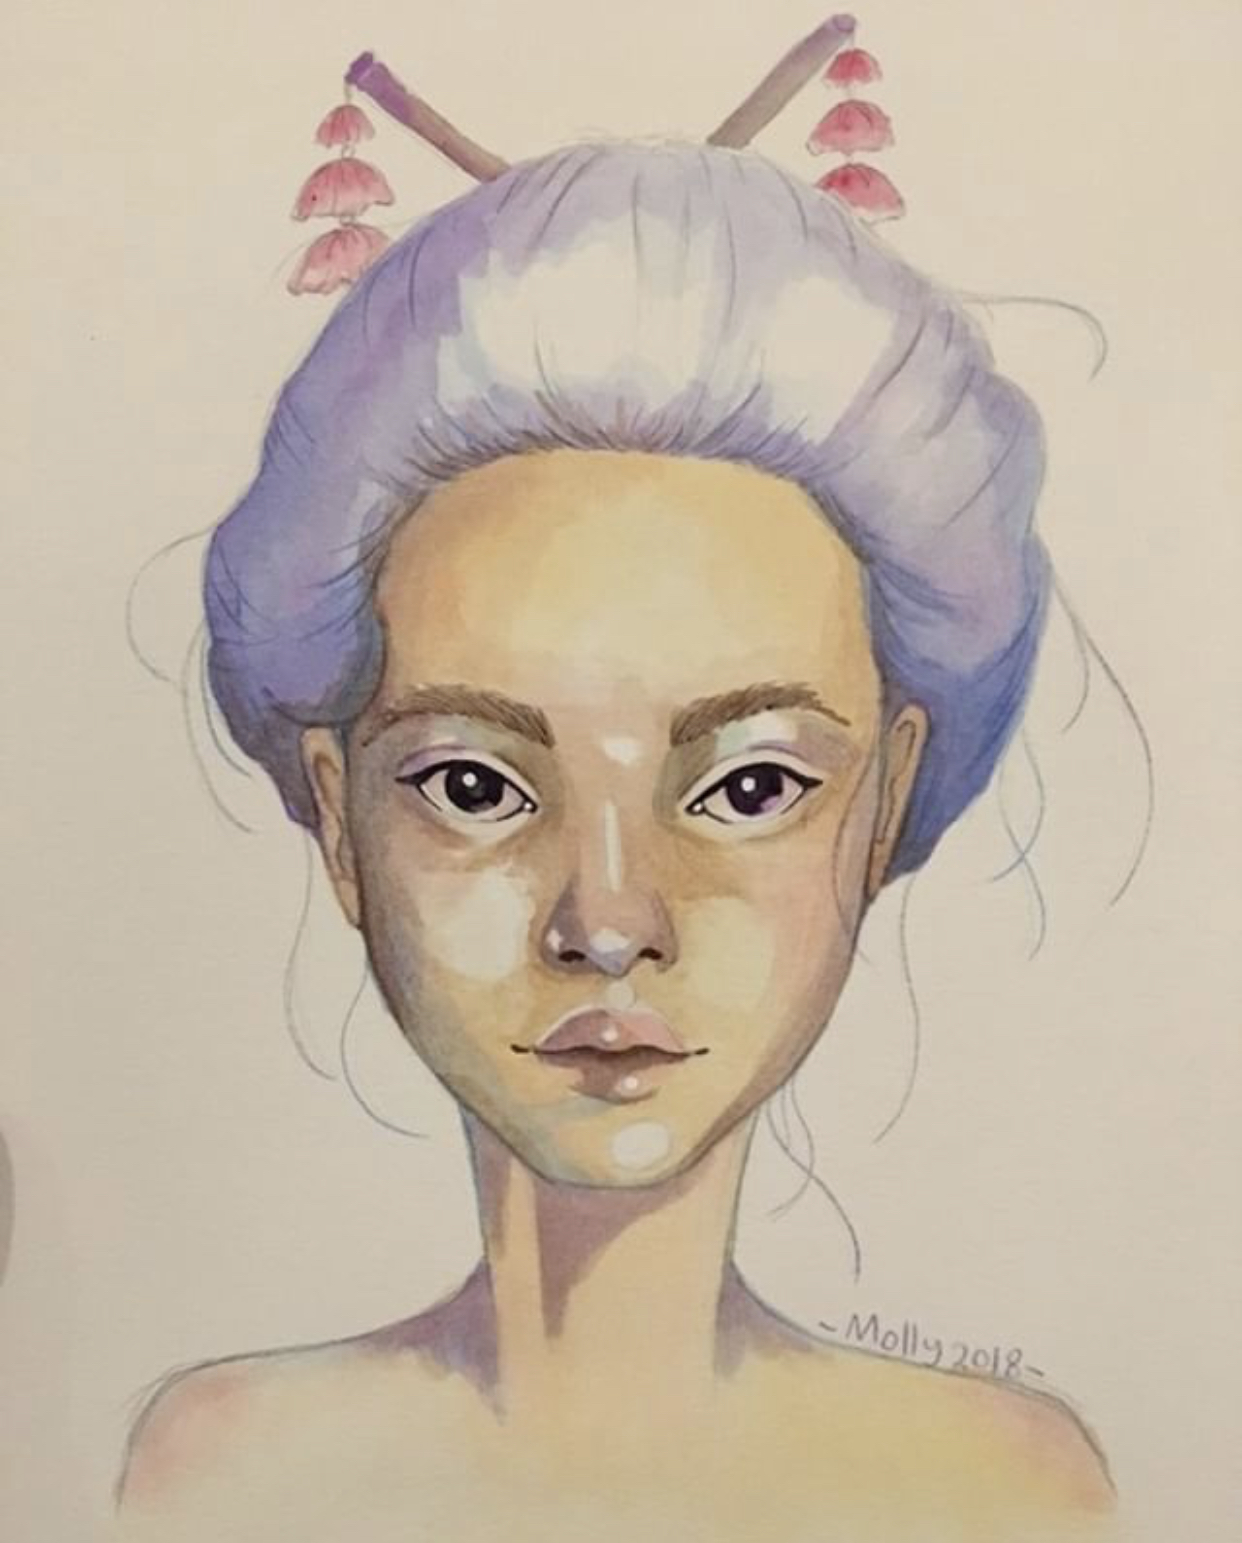 Pencil and watercolour illustrations